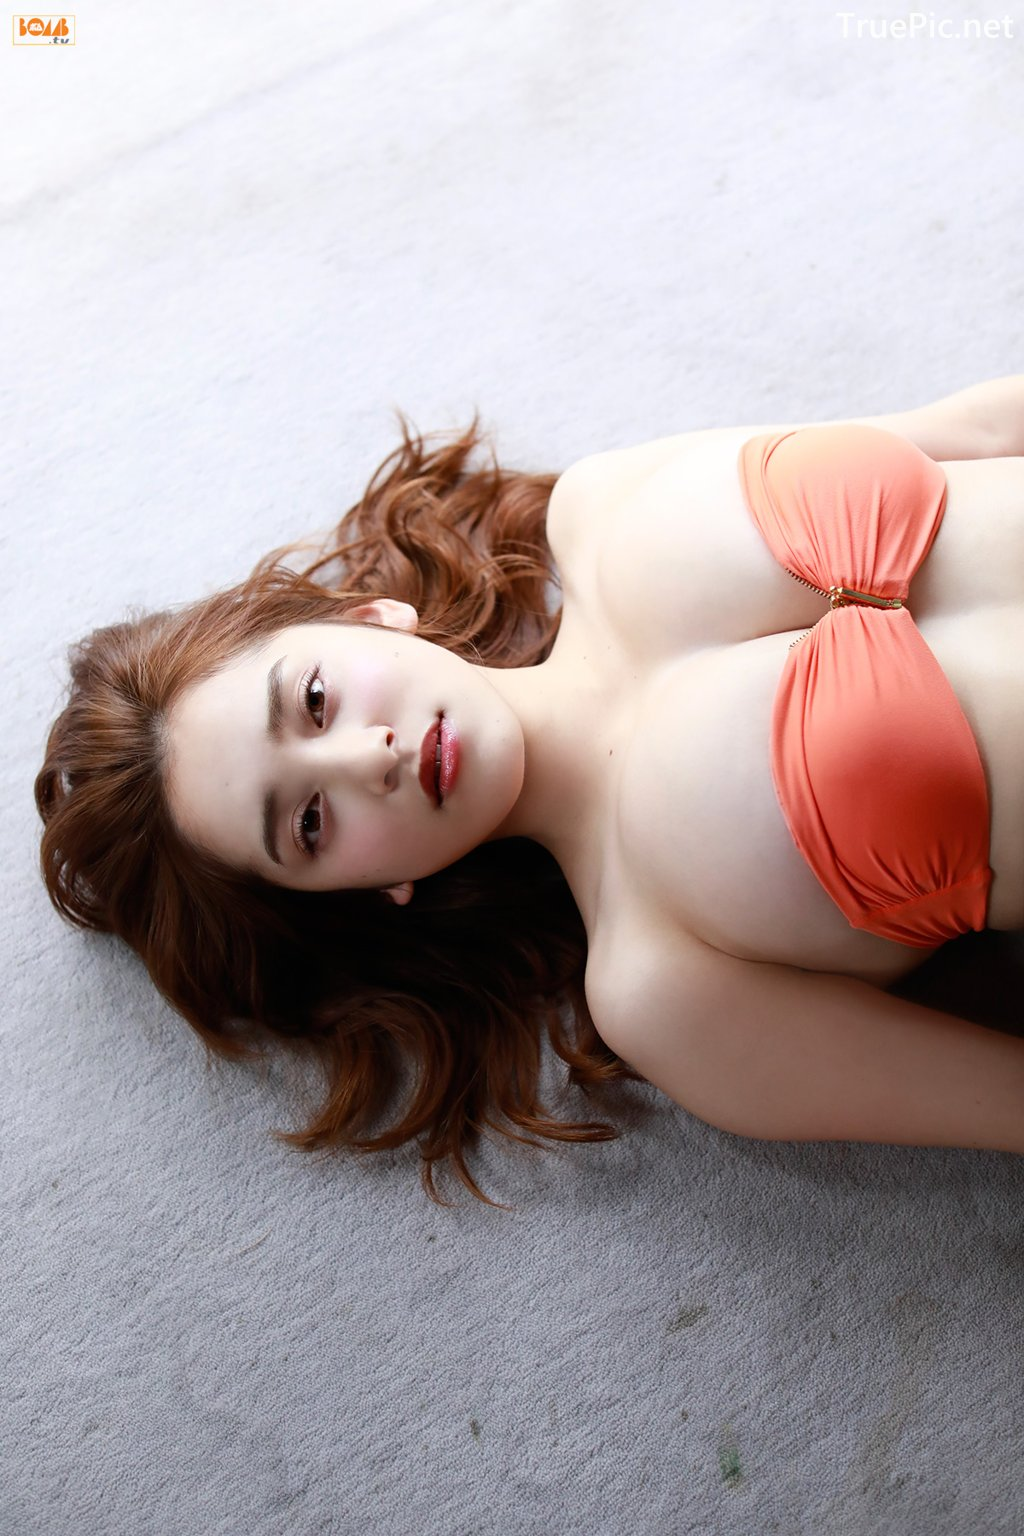 Image-Japanese-Actress-Model-Sayaka-Tomaru-The-Most-Sexy-and-Adorable-Girl-In-Japan-TruePic.net- Picture-8